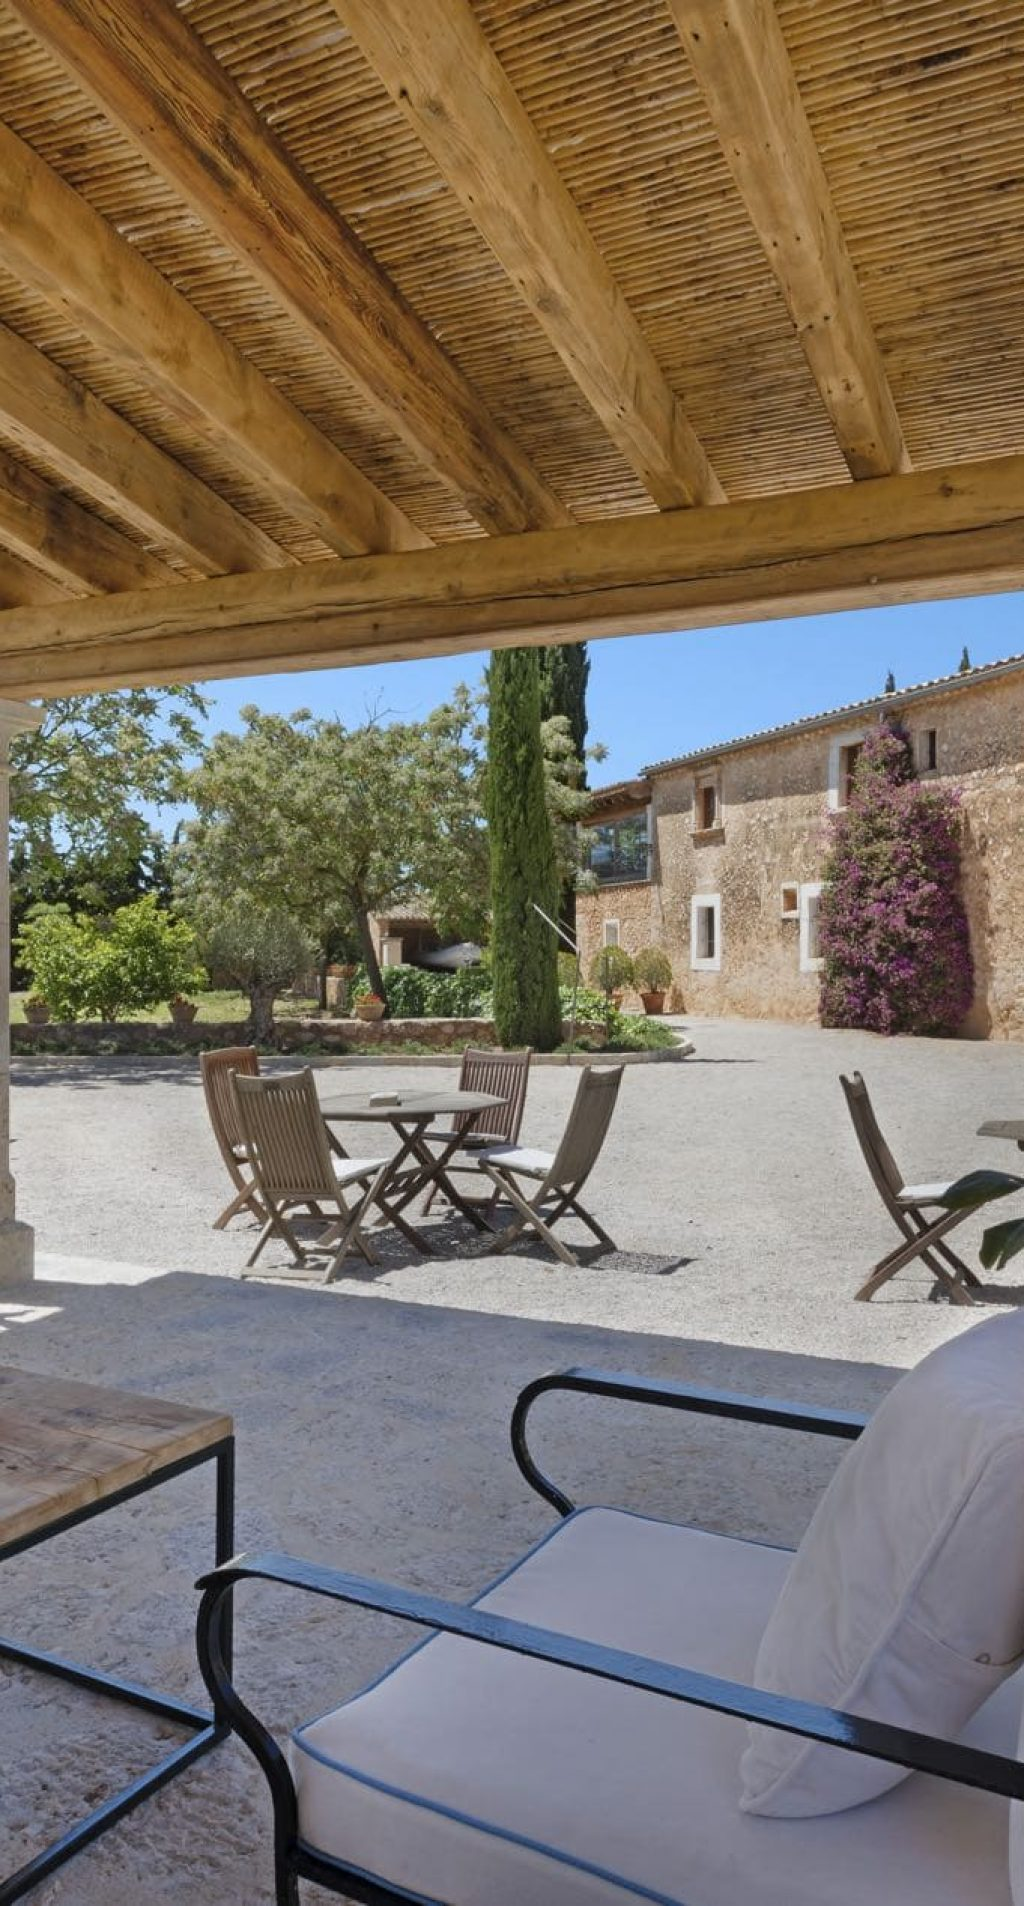 Hotel Torrent Fals in Mallorca for wedding and event